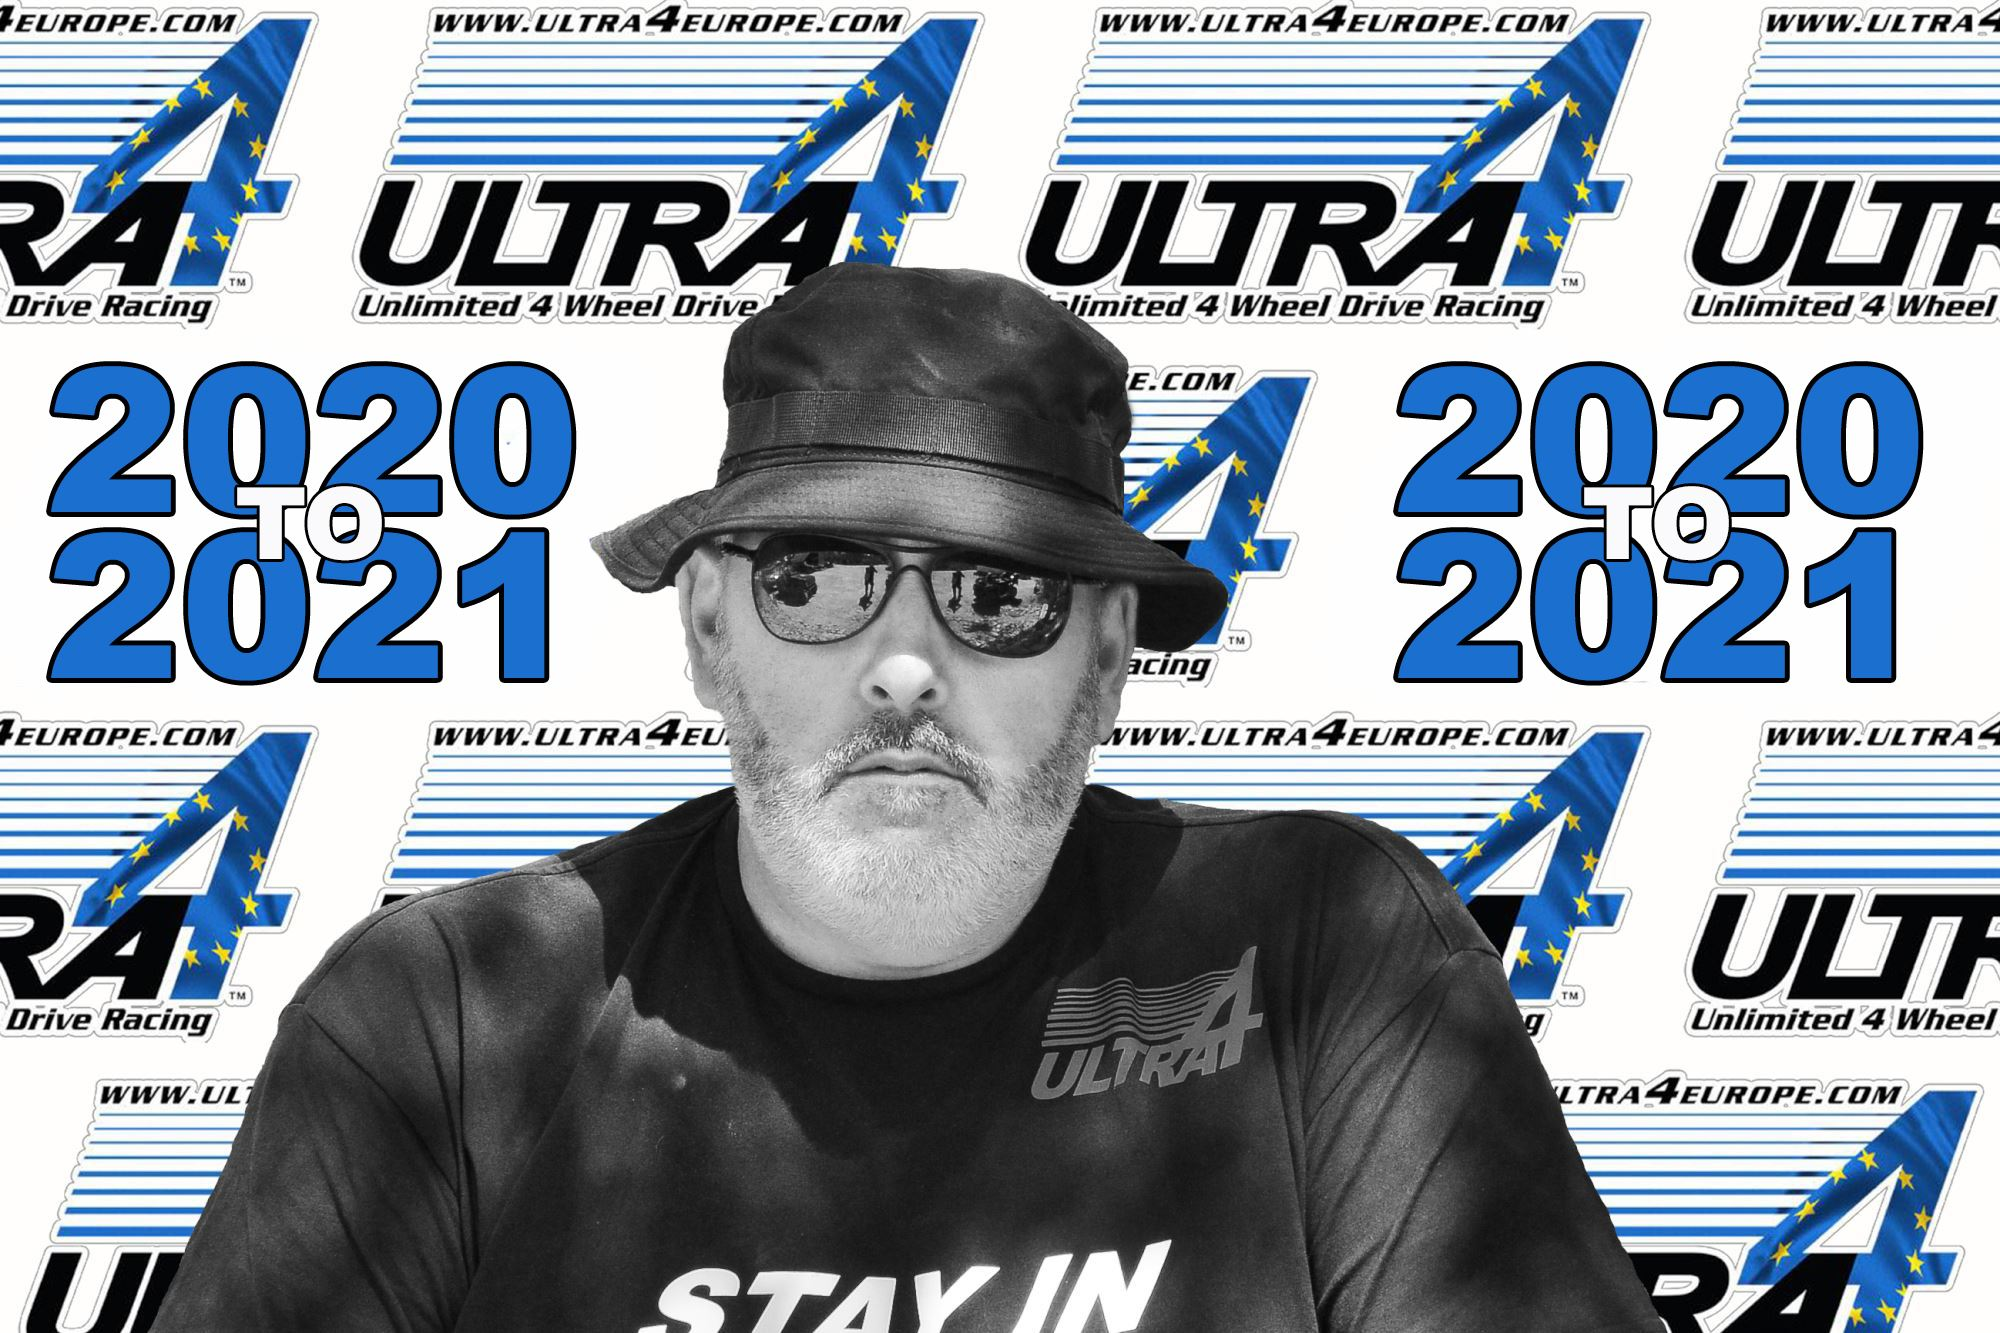 Interview with Richard Crossland on Ultra4Europe 2020 and 2021